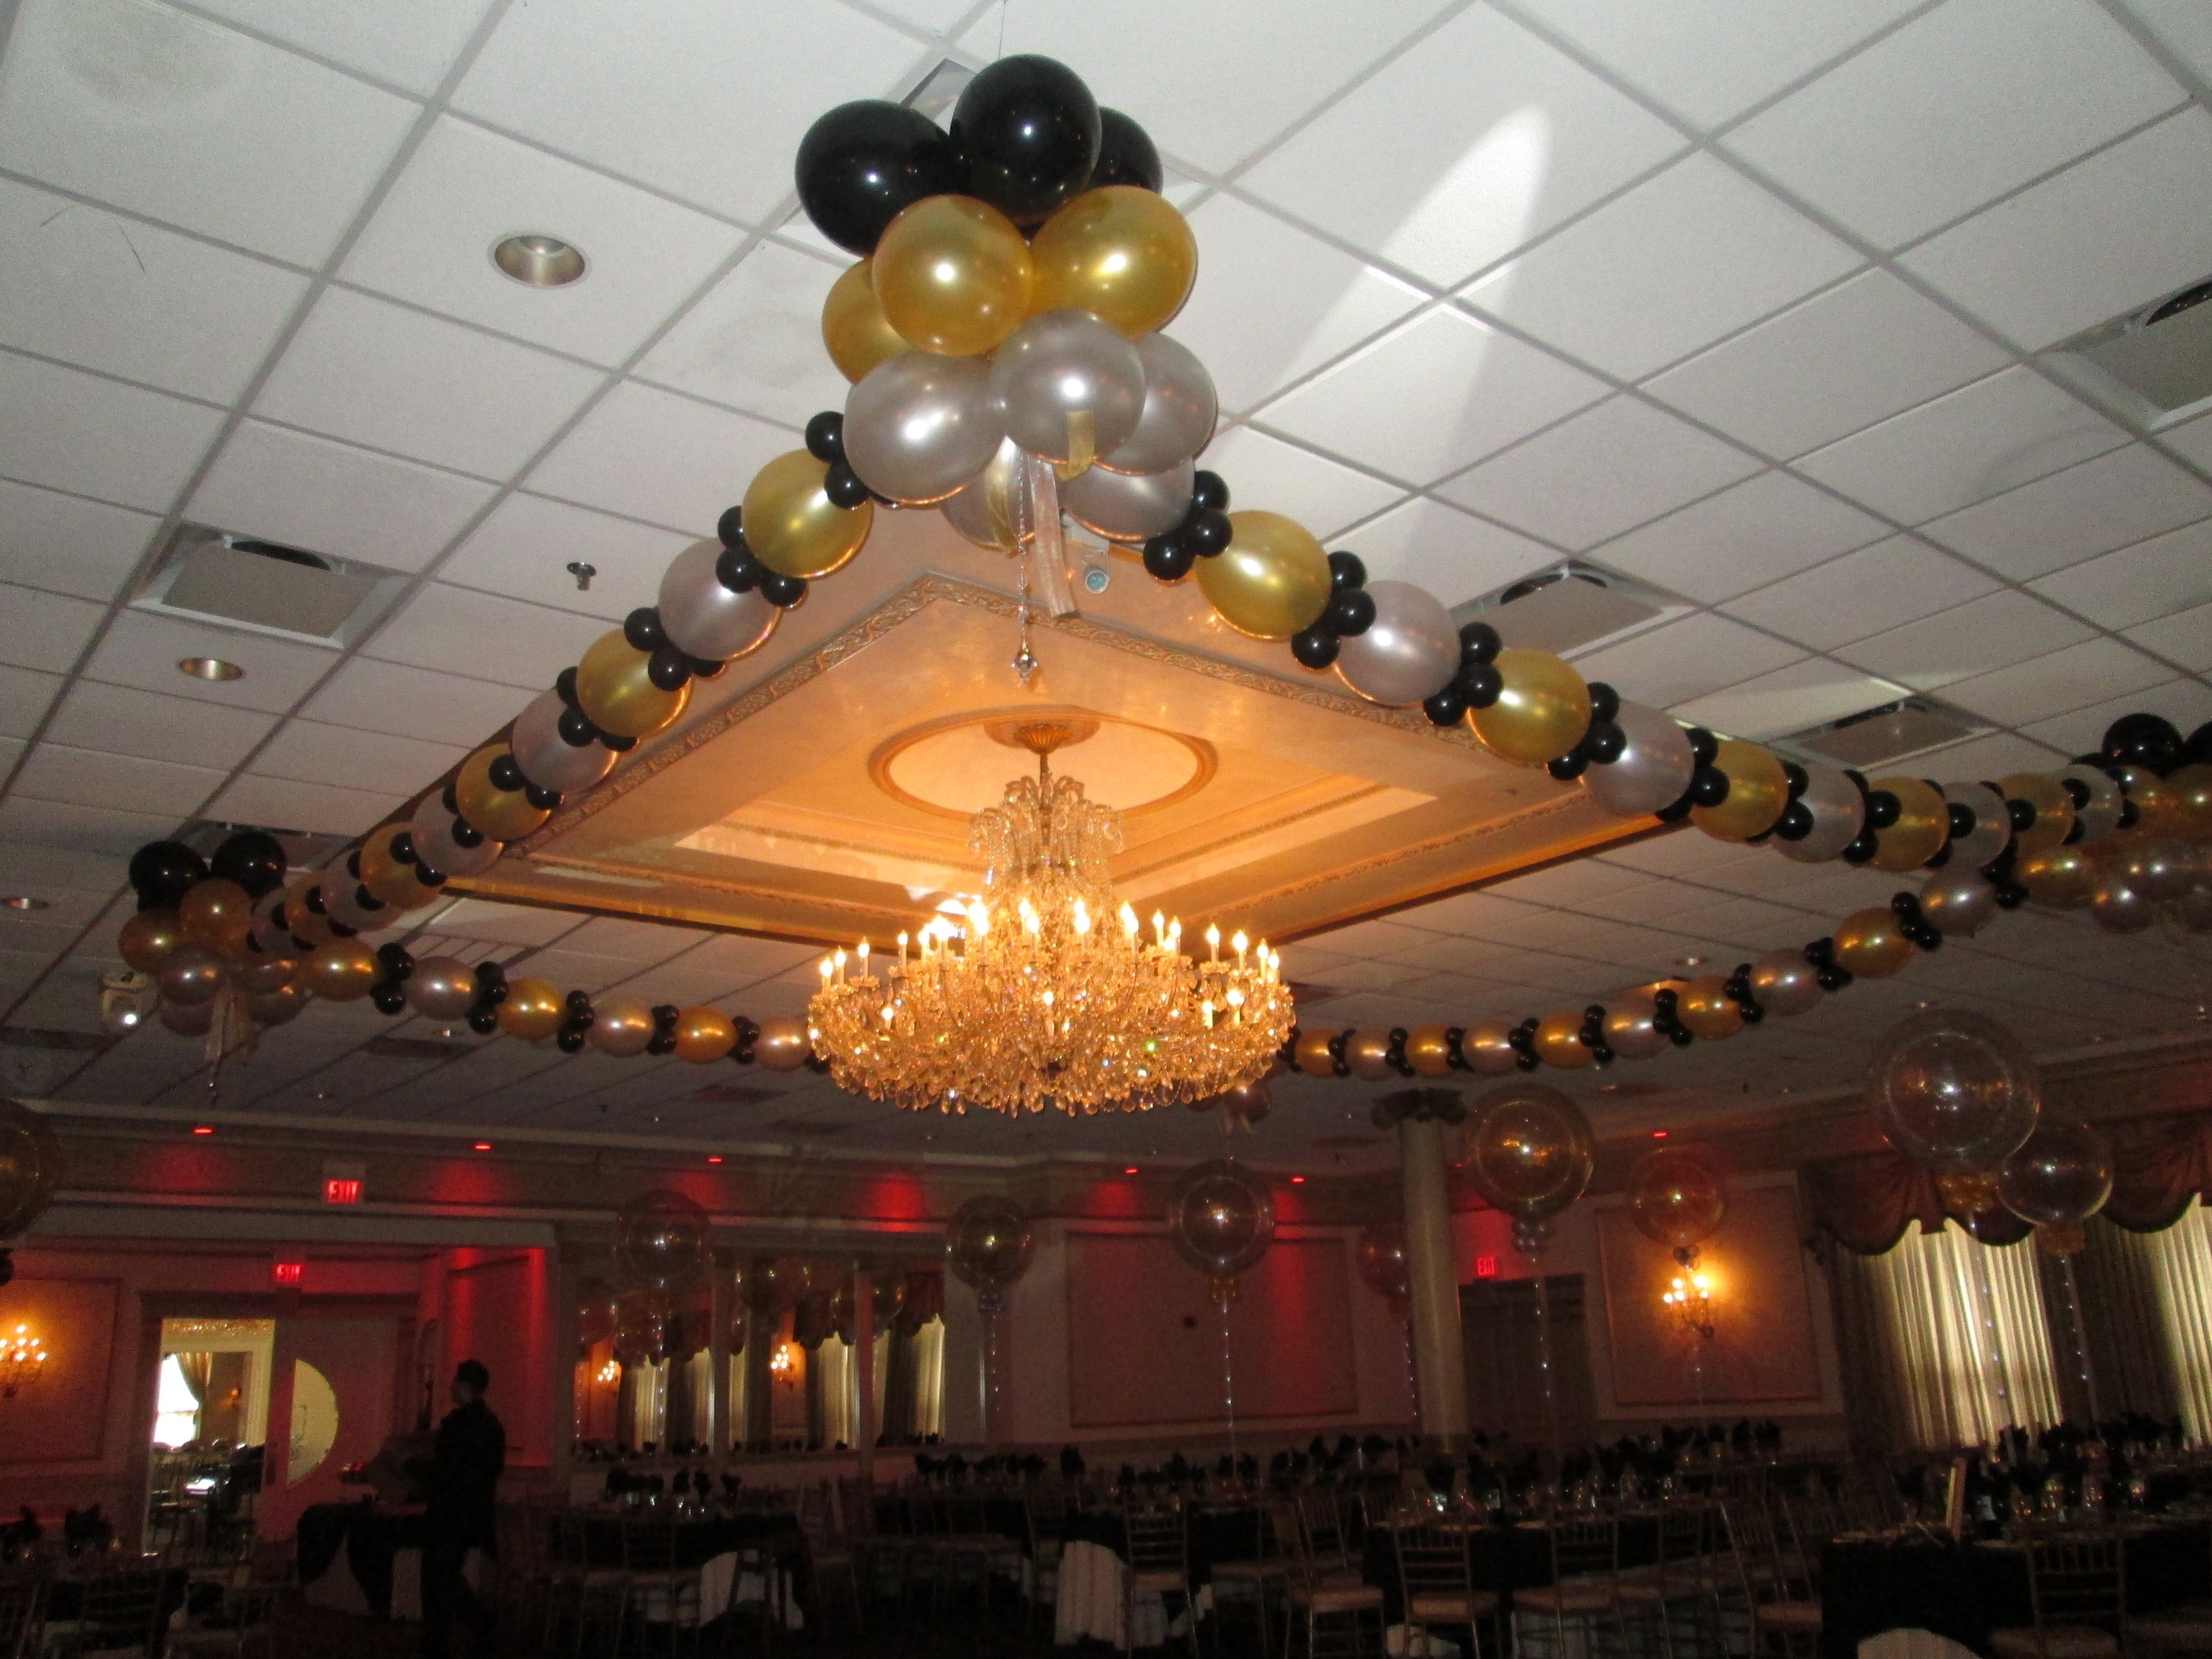 Chandelier Balloon in green and gold with red white and blue